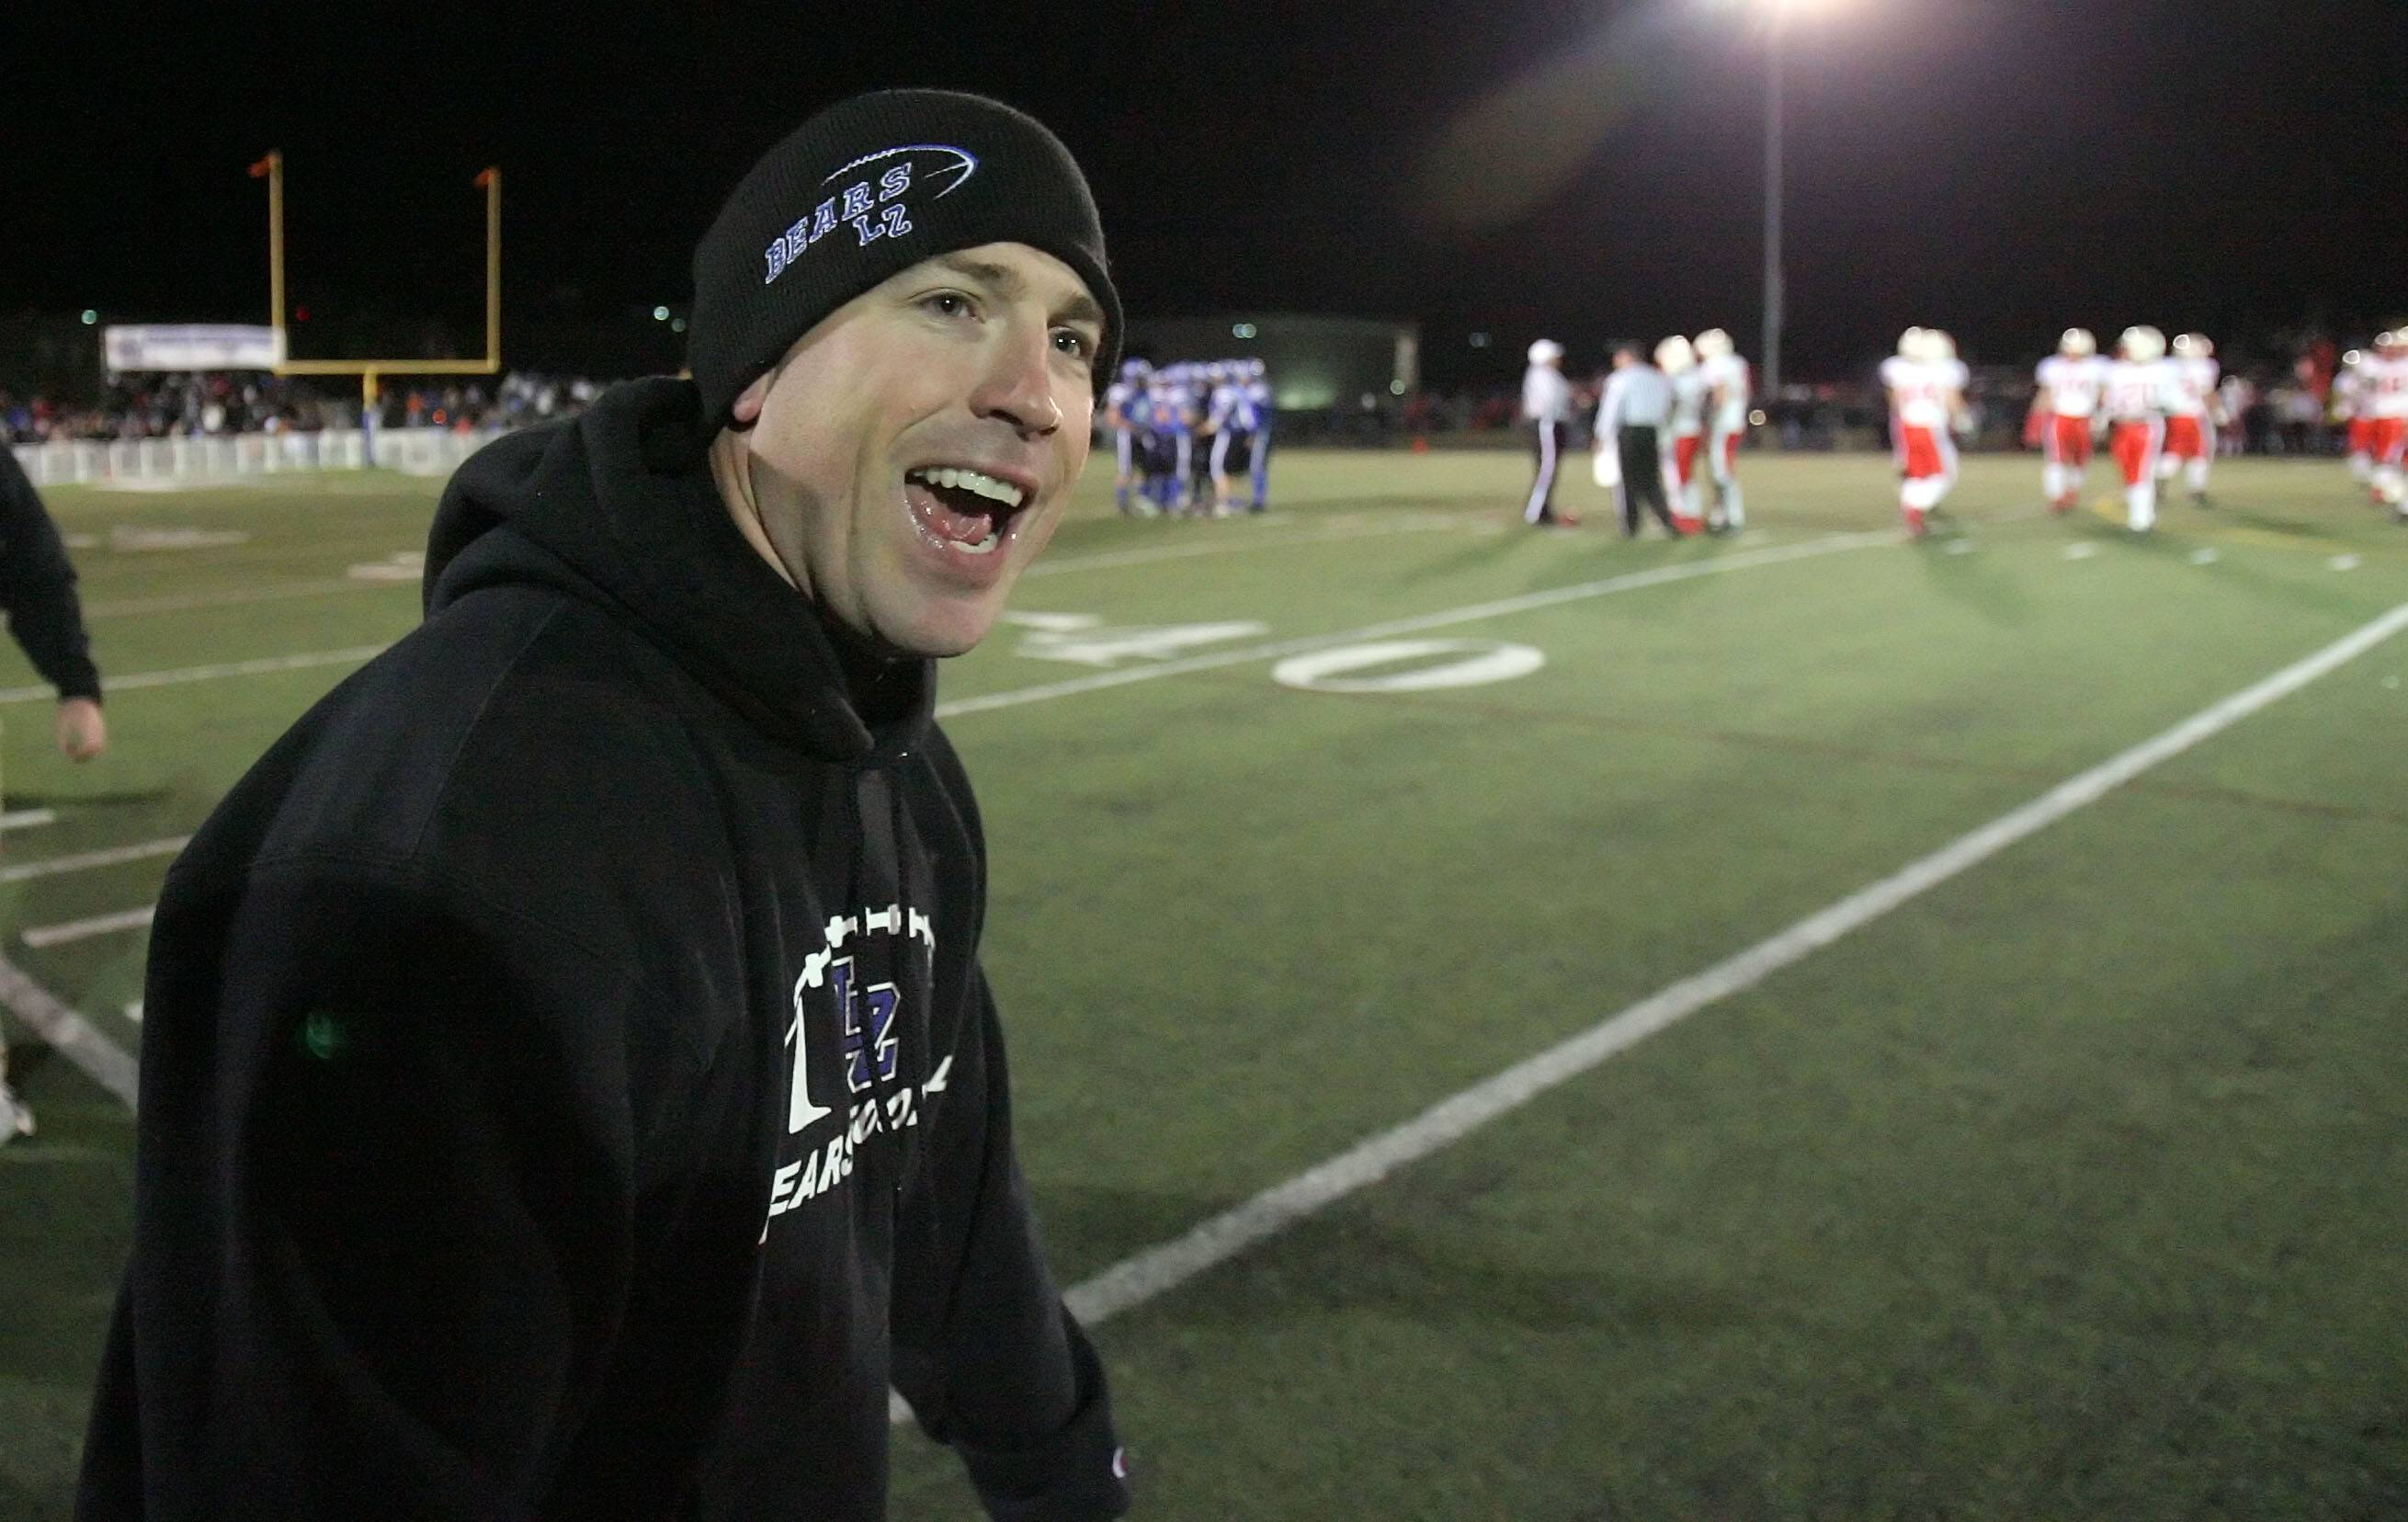 Stortz will report to Conant